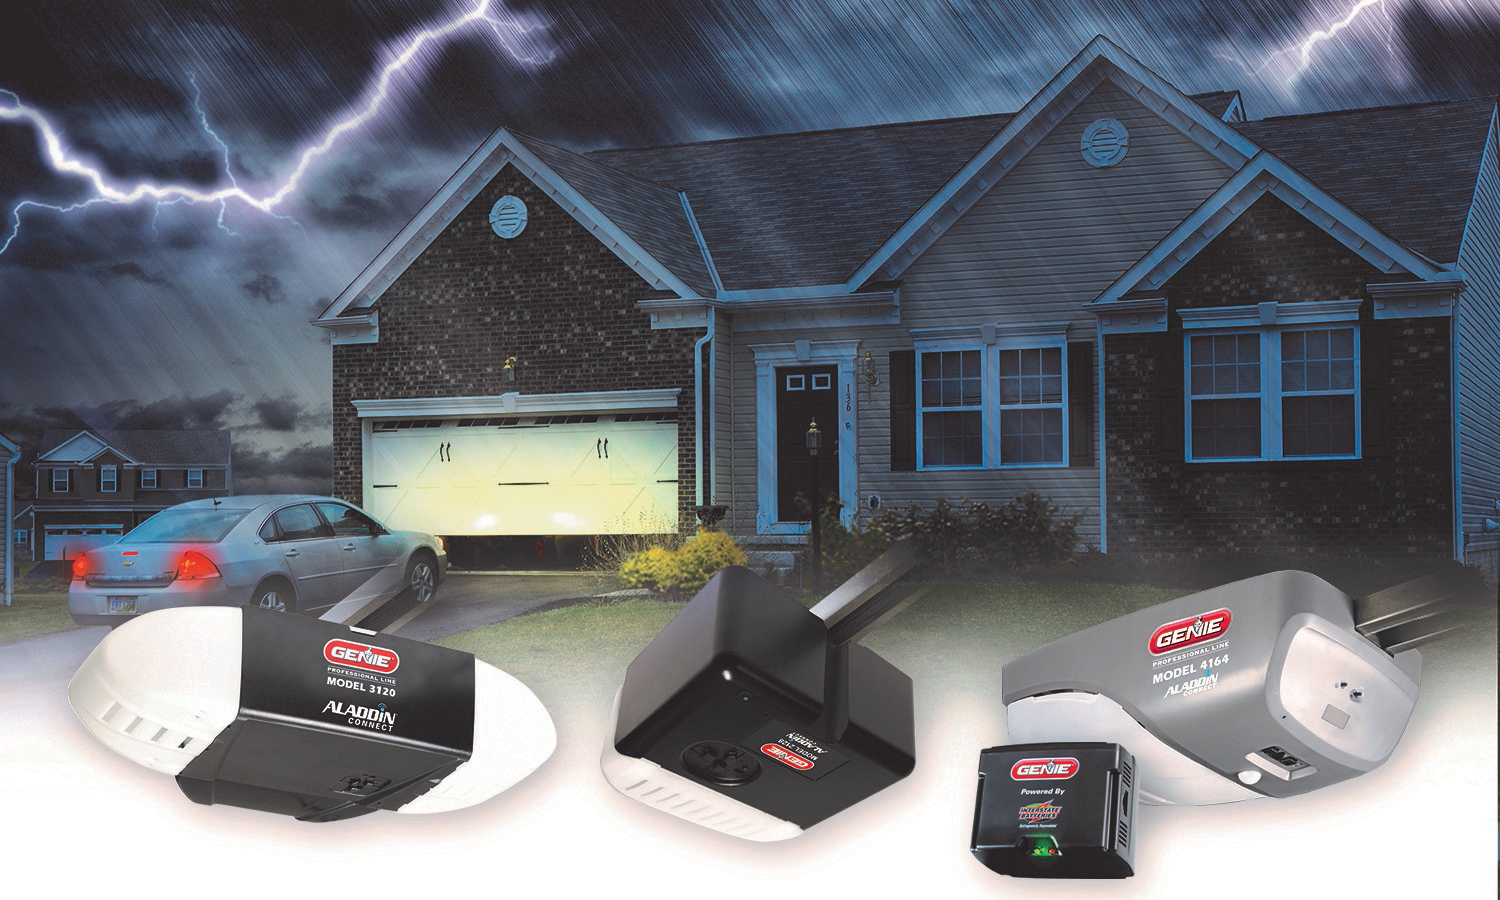 The Genie Company Announces New Battery Backup Capable Garage Door